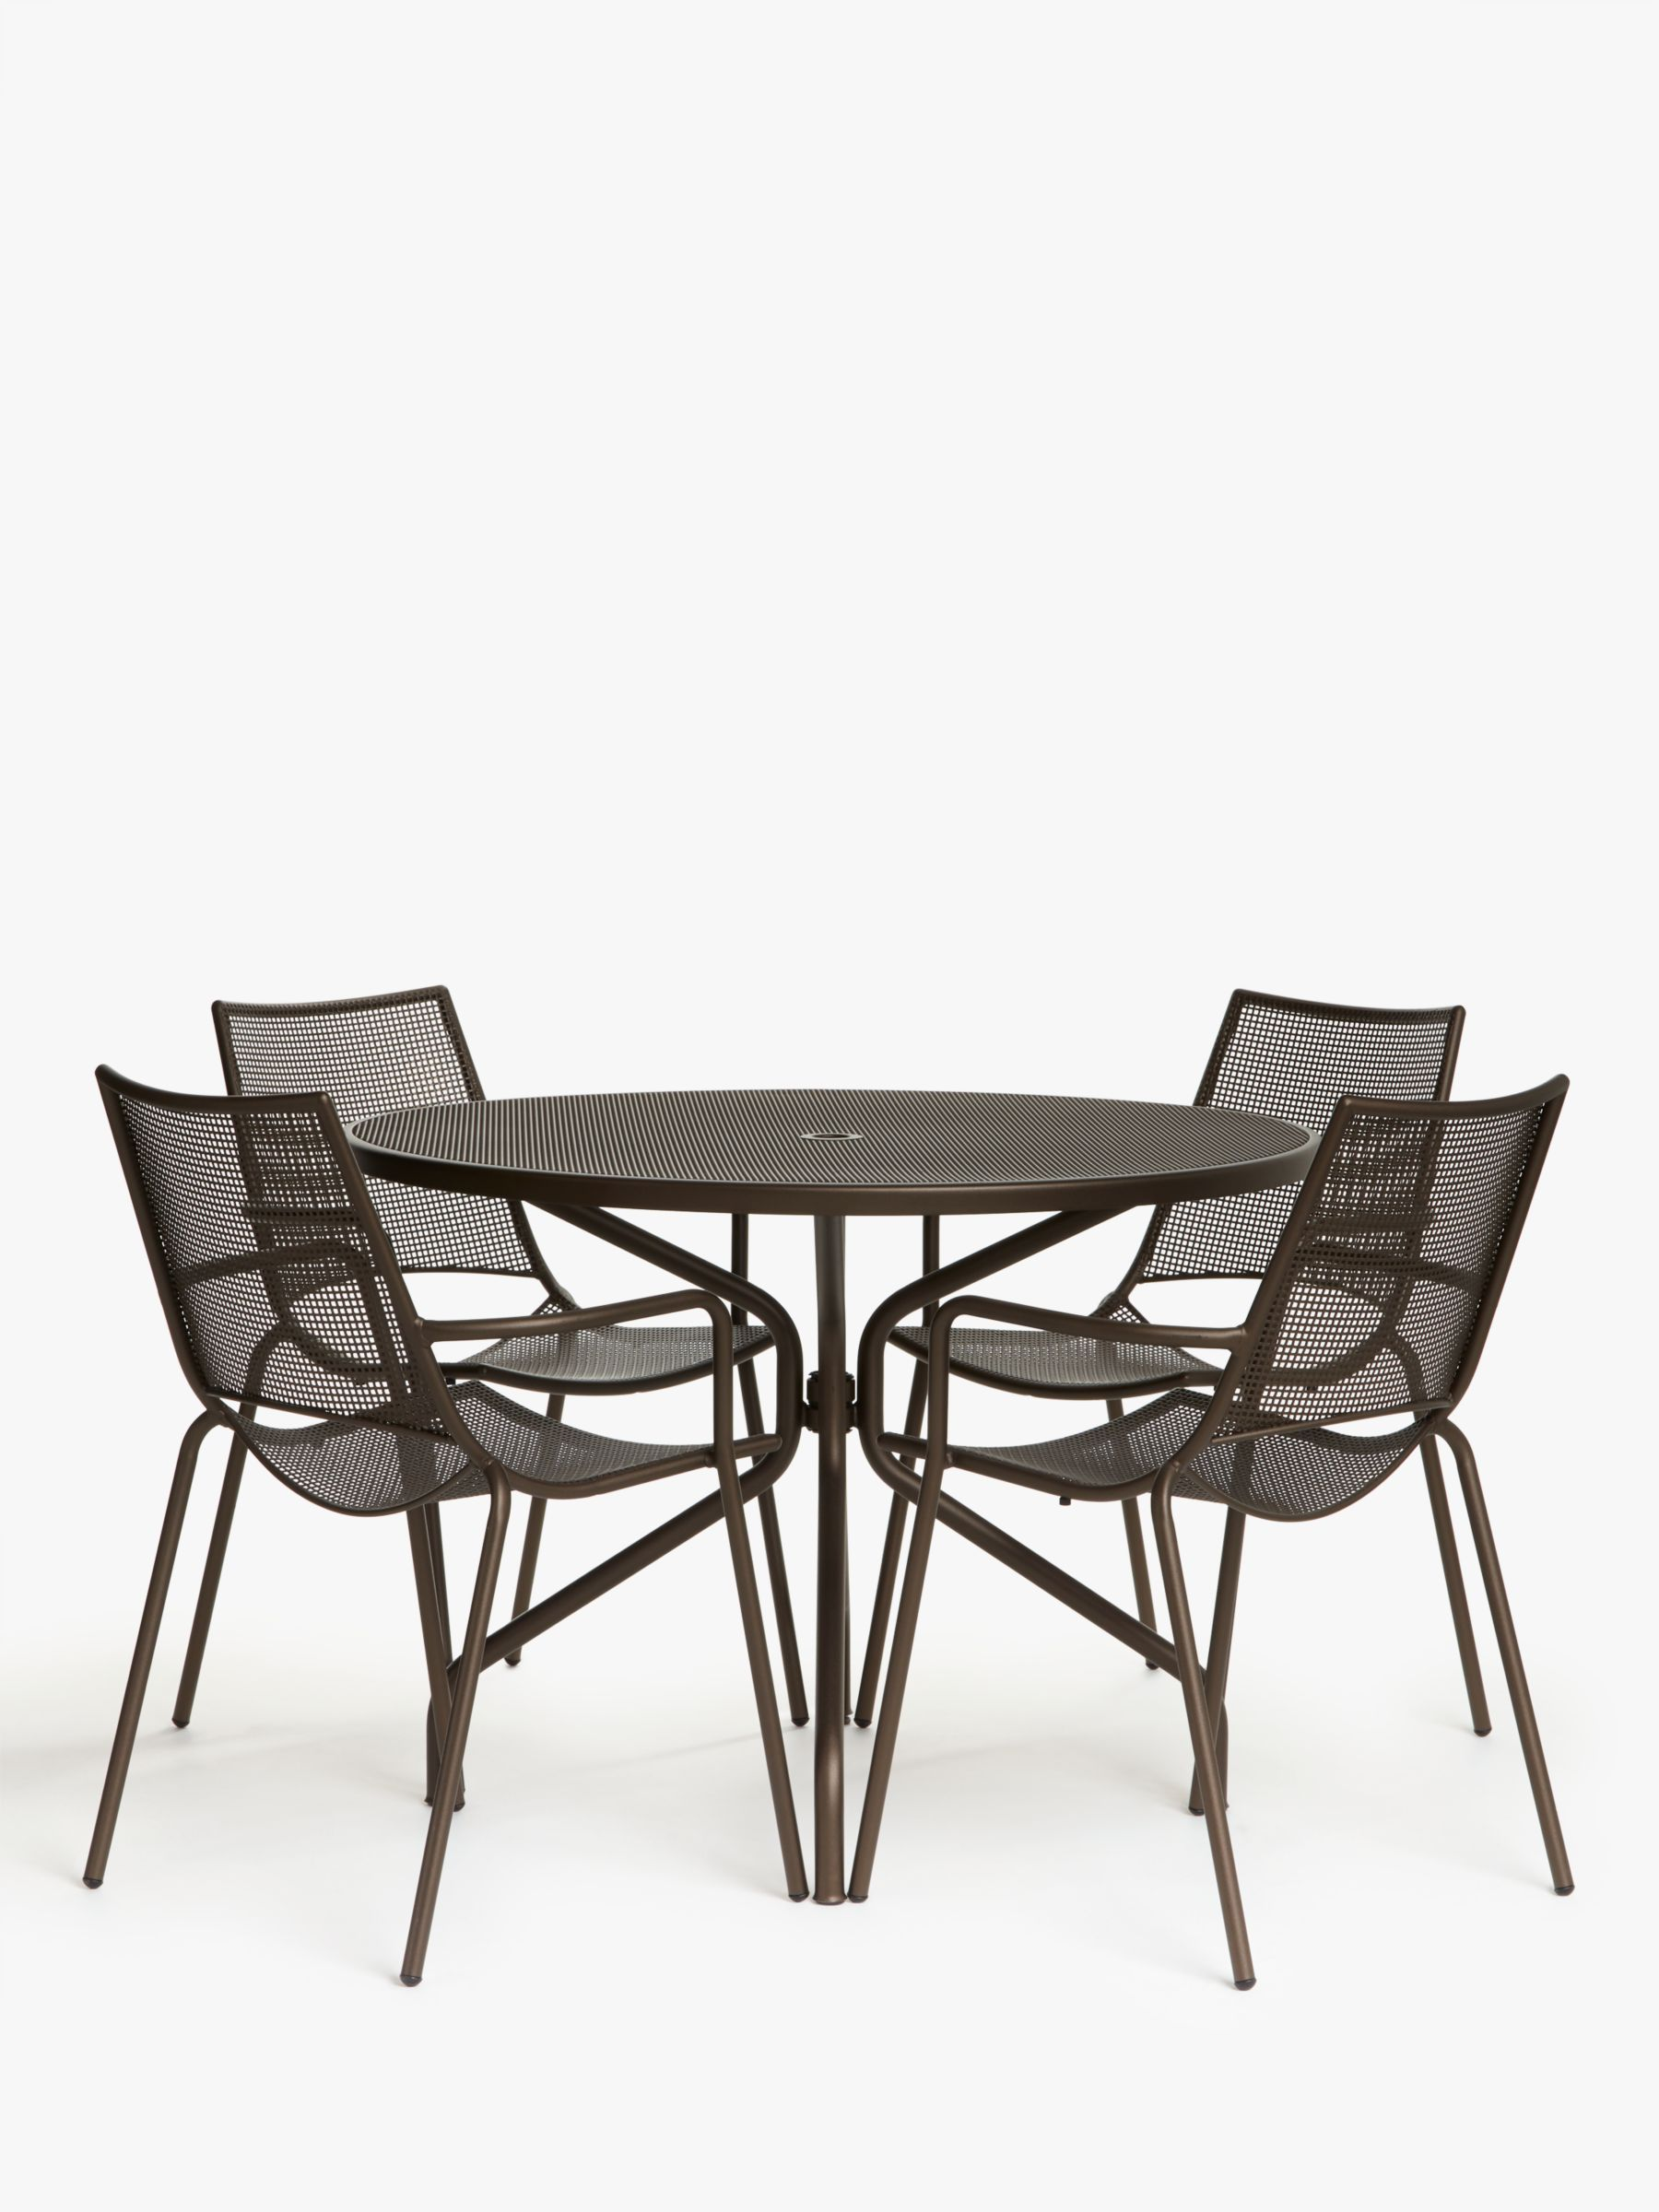 EMU Ala Mesh 9 Seat Garden Dining Table and Chairs Set, Bronze